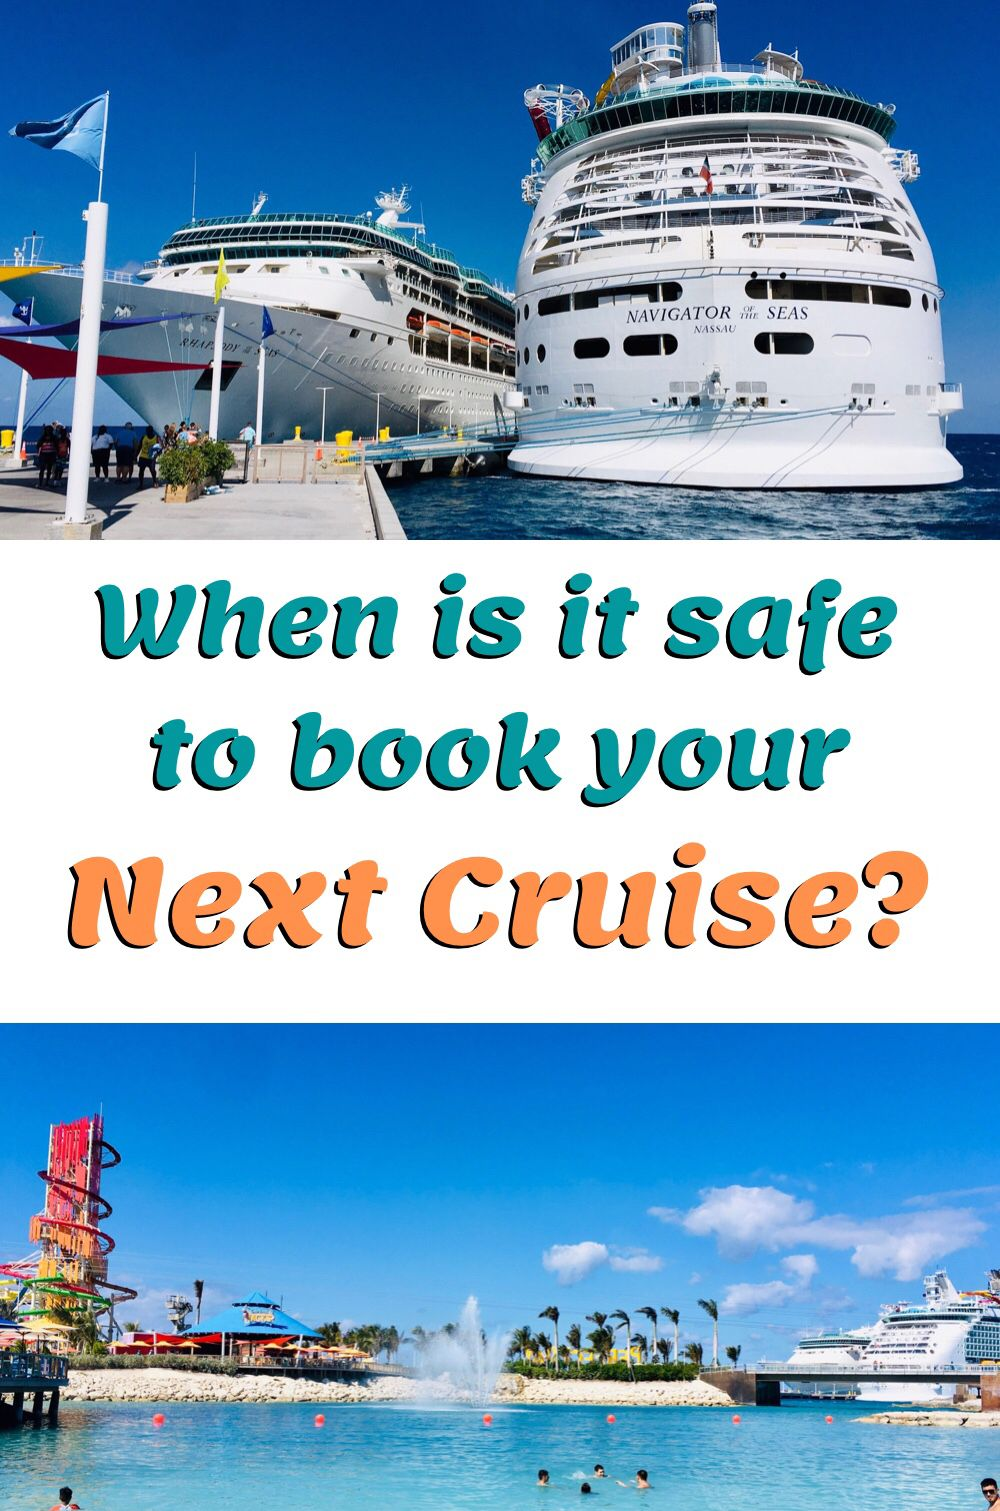 Ready to get back to cruising? When is it safe to book? Check out our blog. #thriftydrifting #royalcaribbeancruise #royalcaribbean #cruise #cruisetips #cruisevacation #cruising